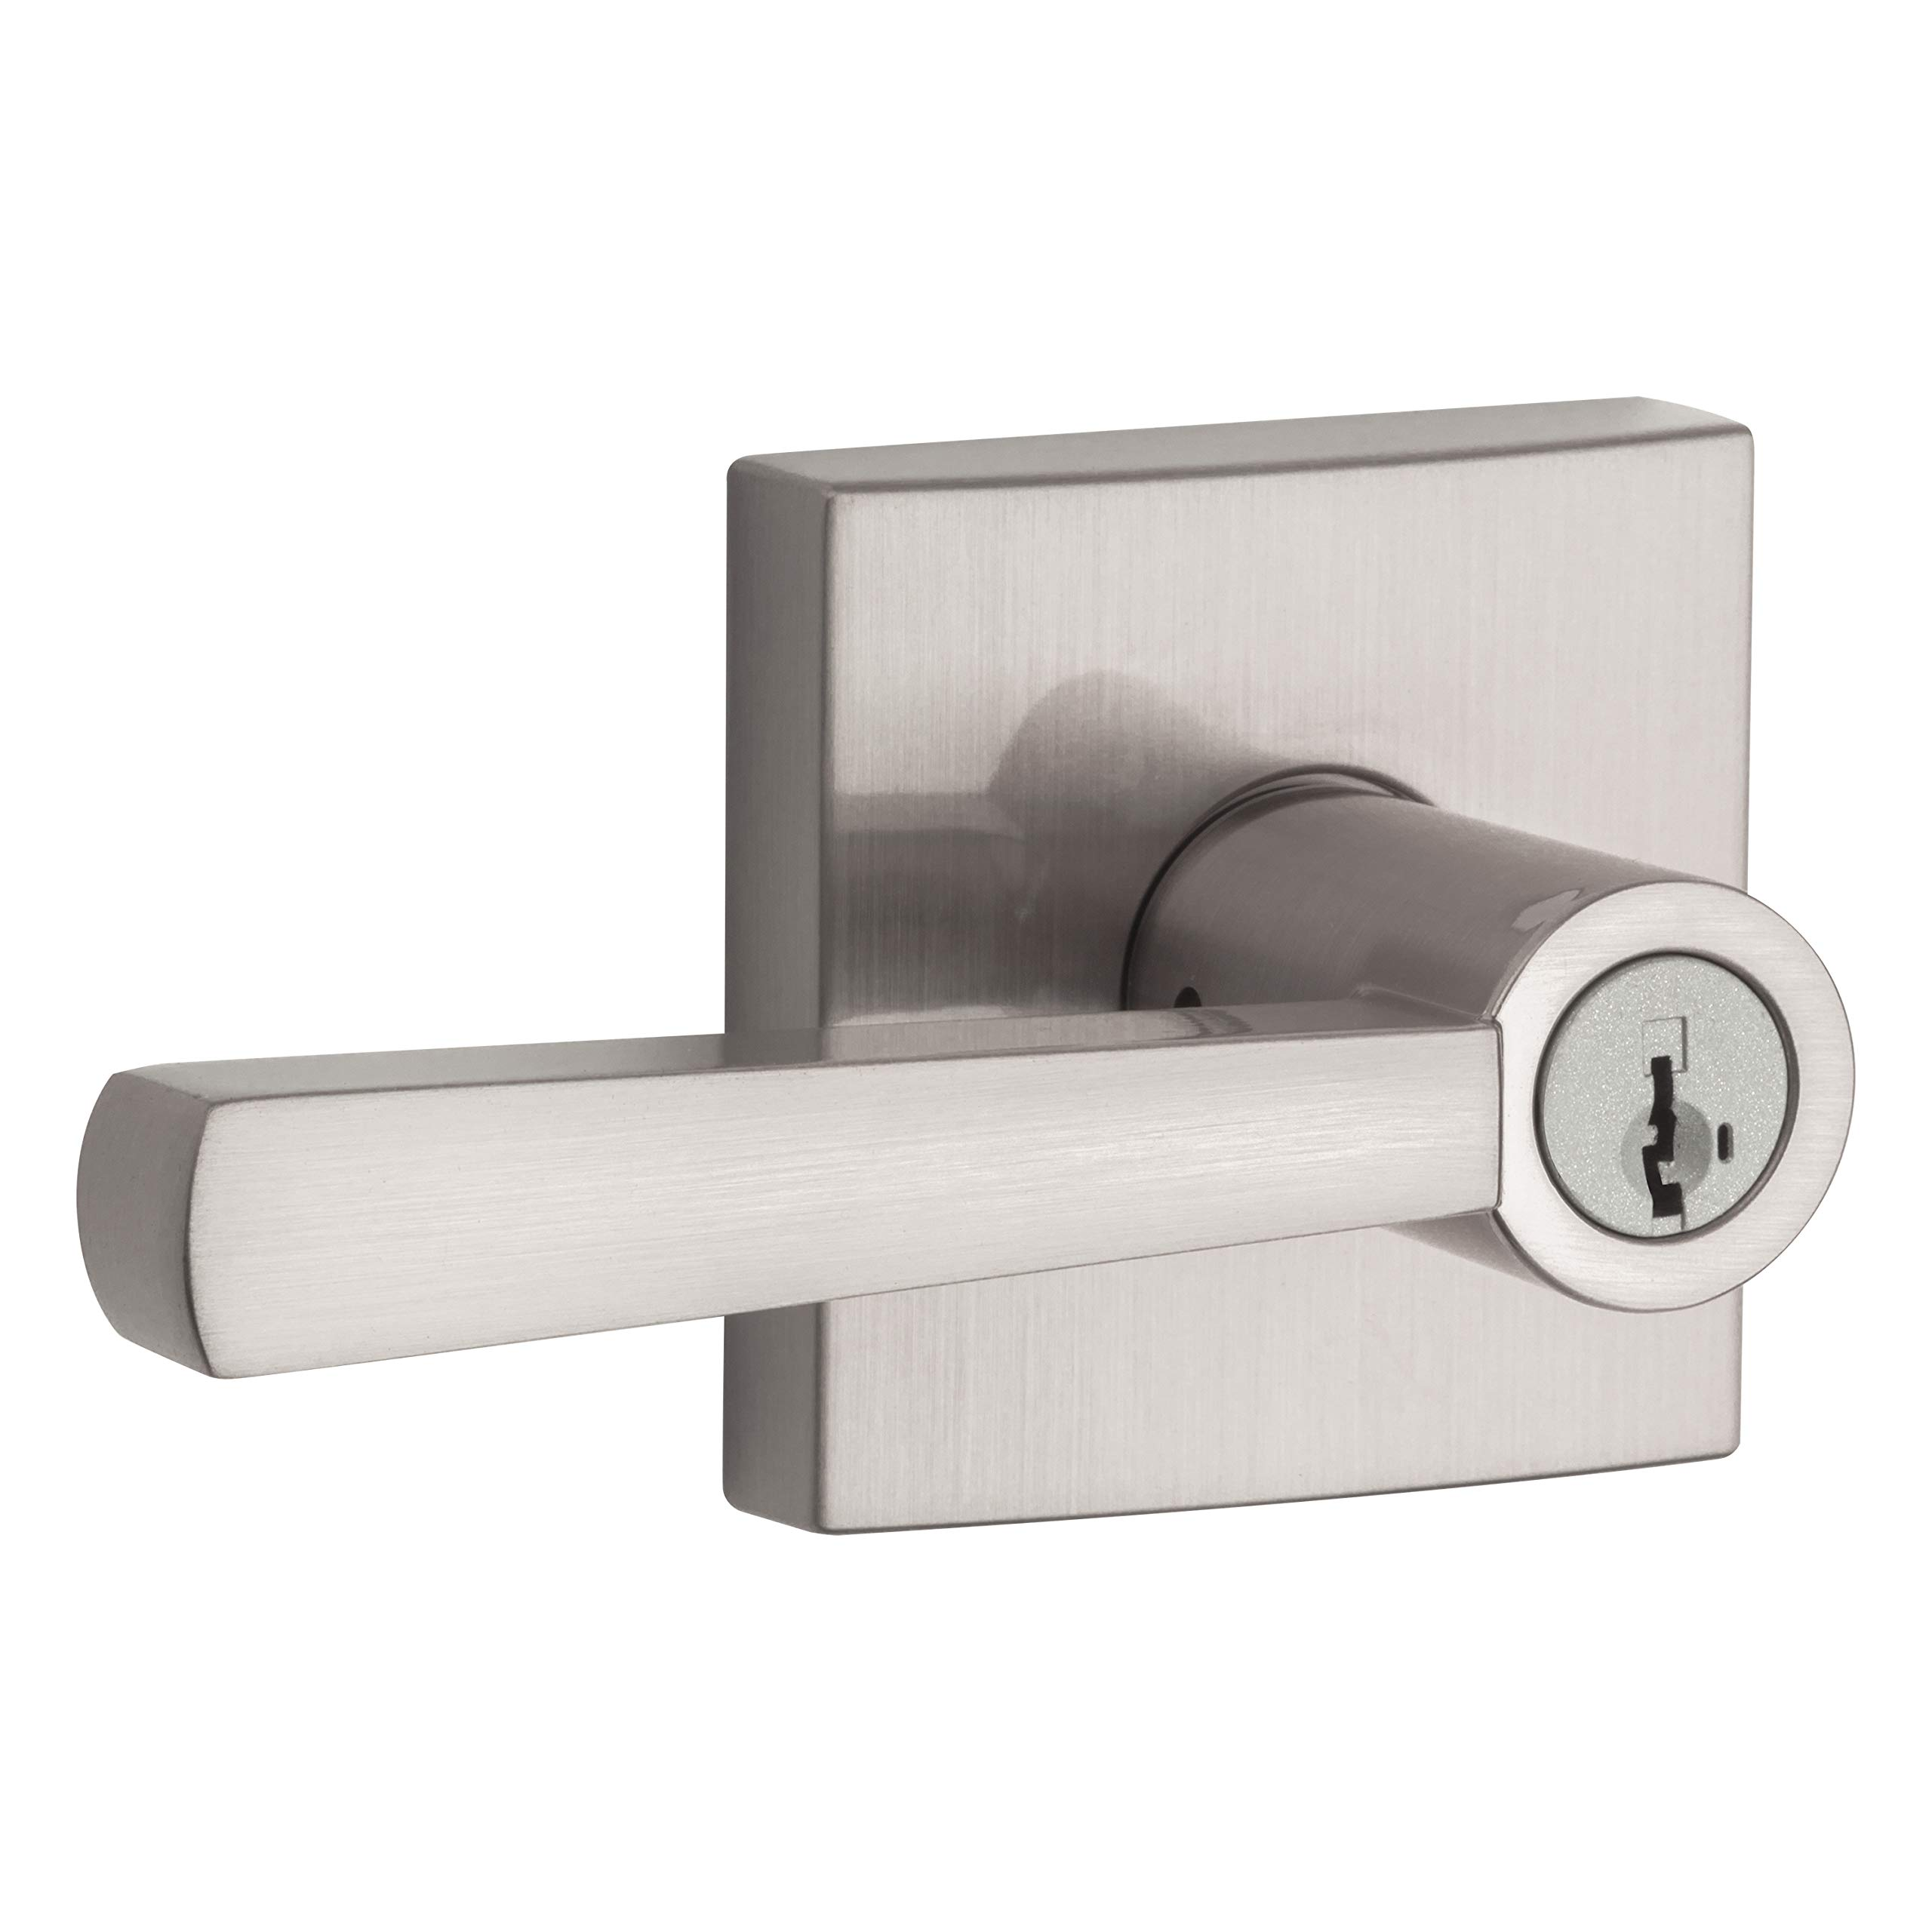 Baldwin Prestige Spyglass Entry Lever featuring SmartKey in Satin Nickel by Baldwin (Image #1)